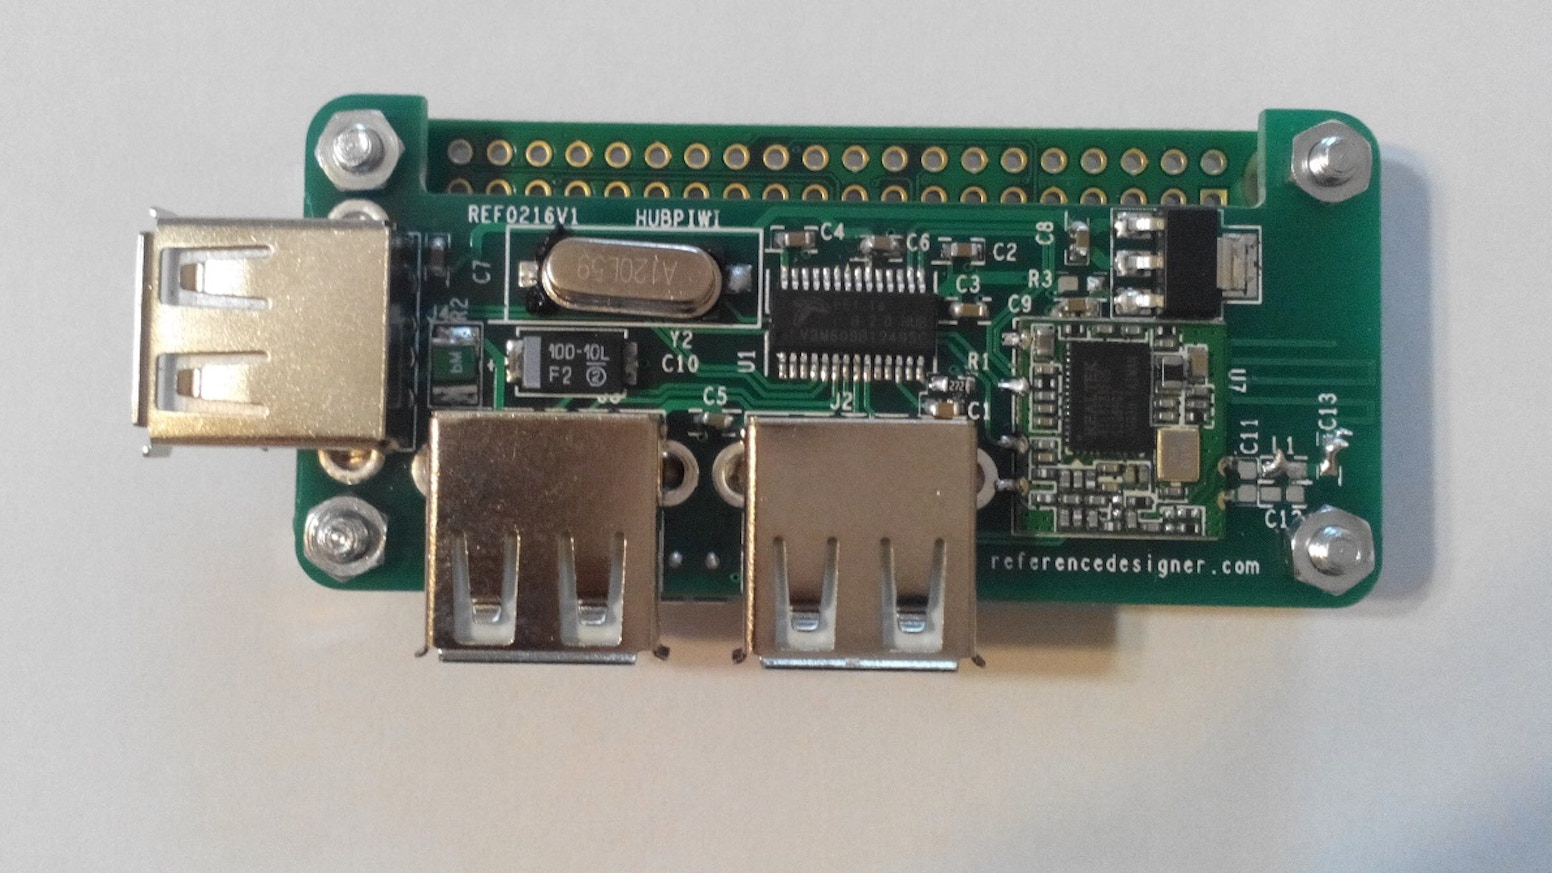 Hubpiwi Raspberry Pi Zero Hub With Wifi No Cable Connector By Usb Circuit Board Is A 20 For Three Ports And